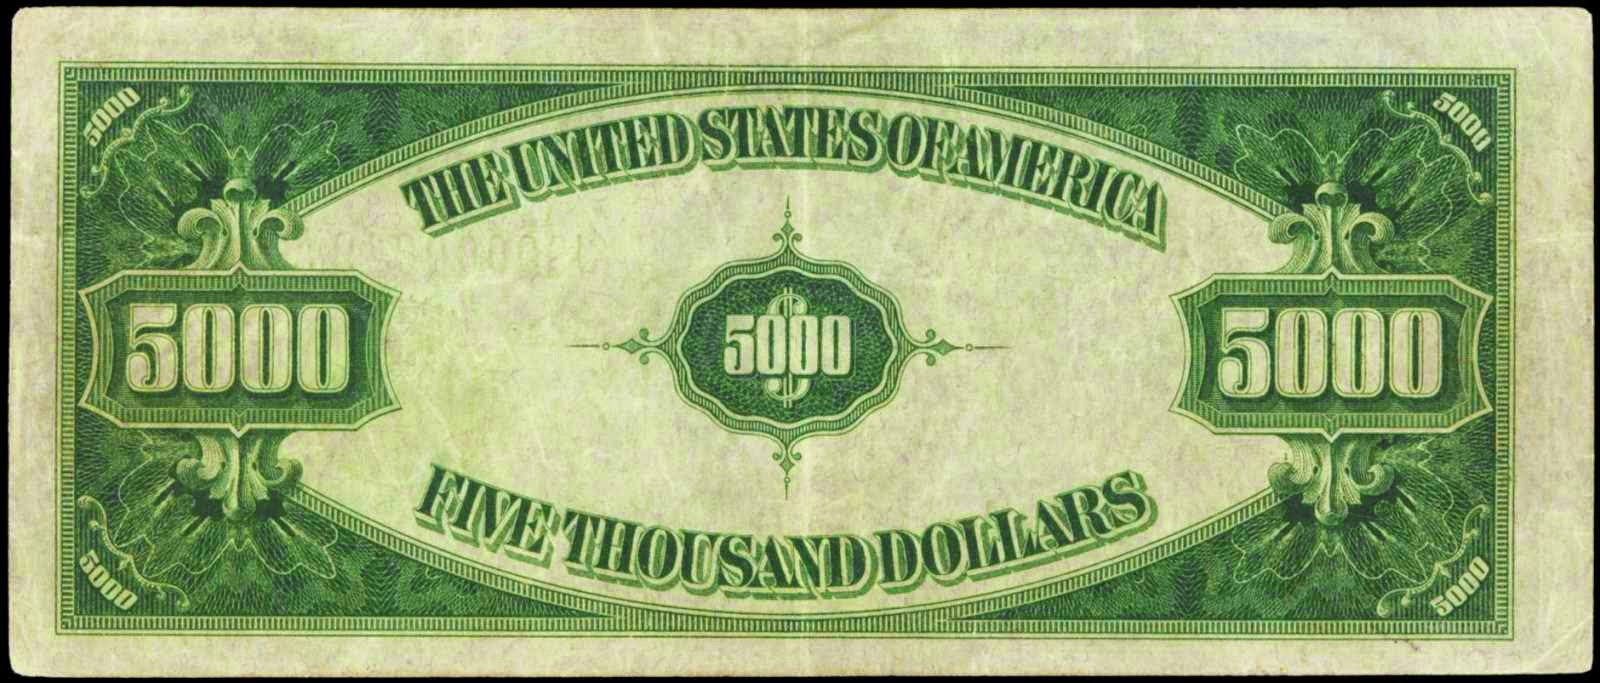 US Paper Money Five Thousand Dollar Bill Value